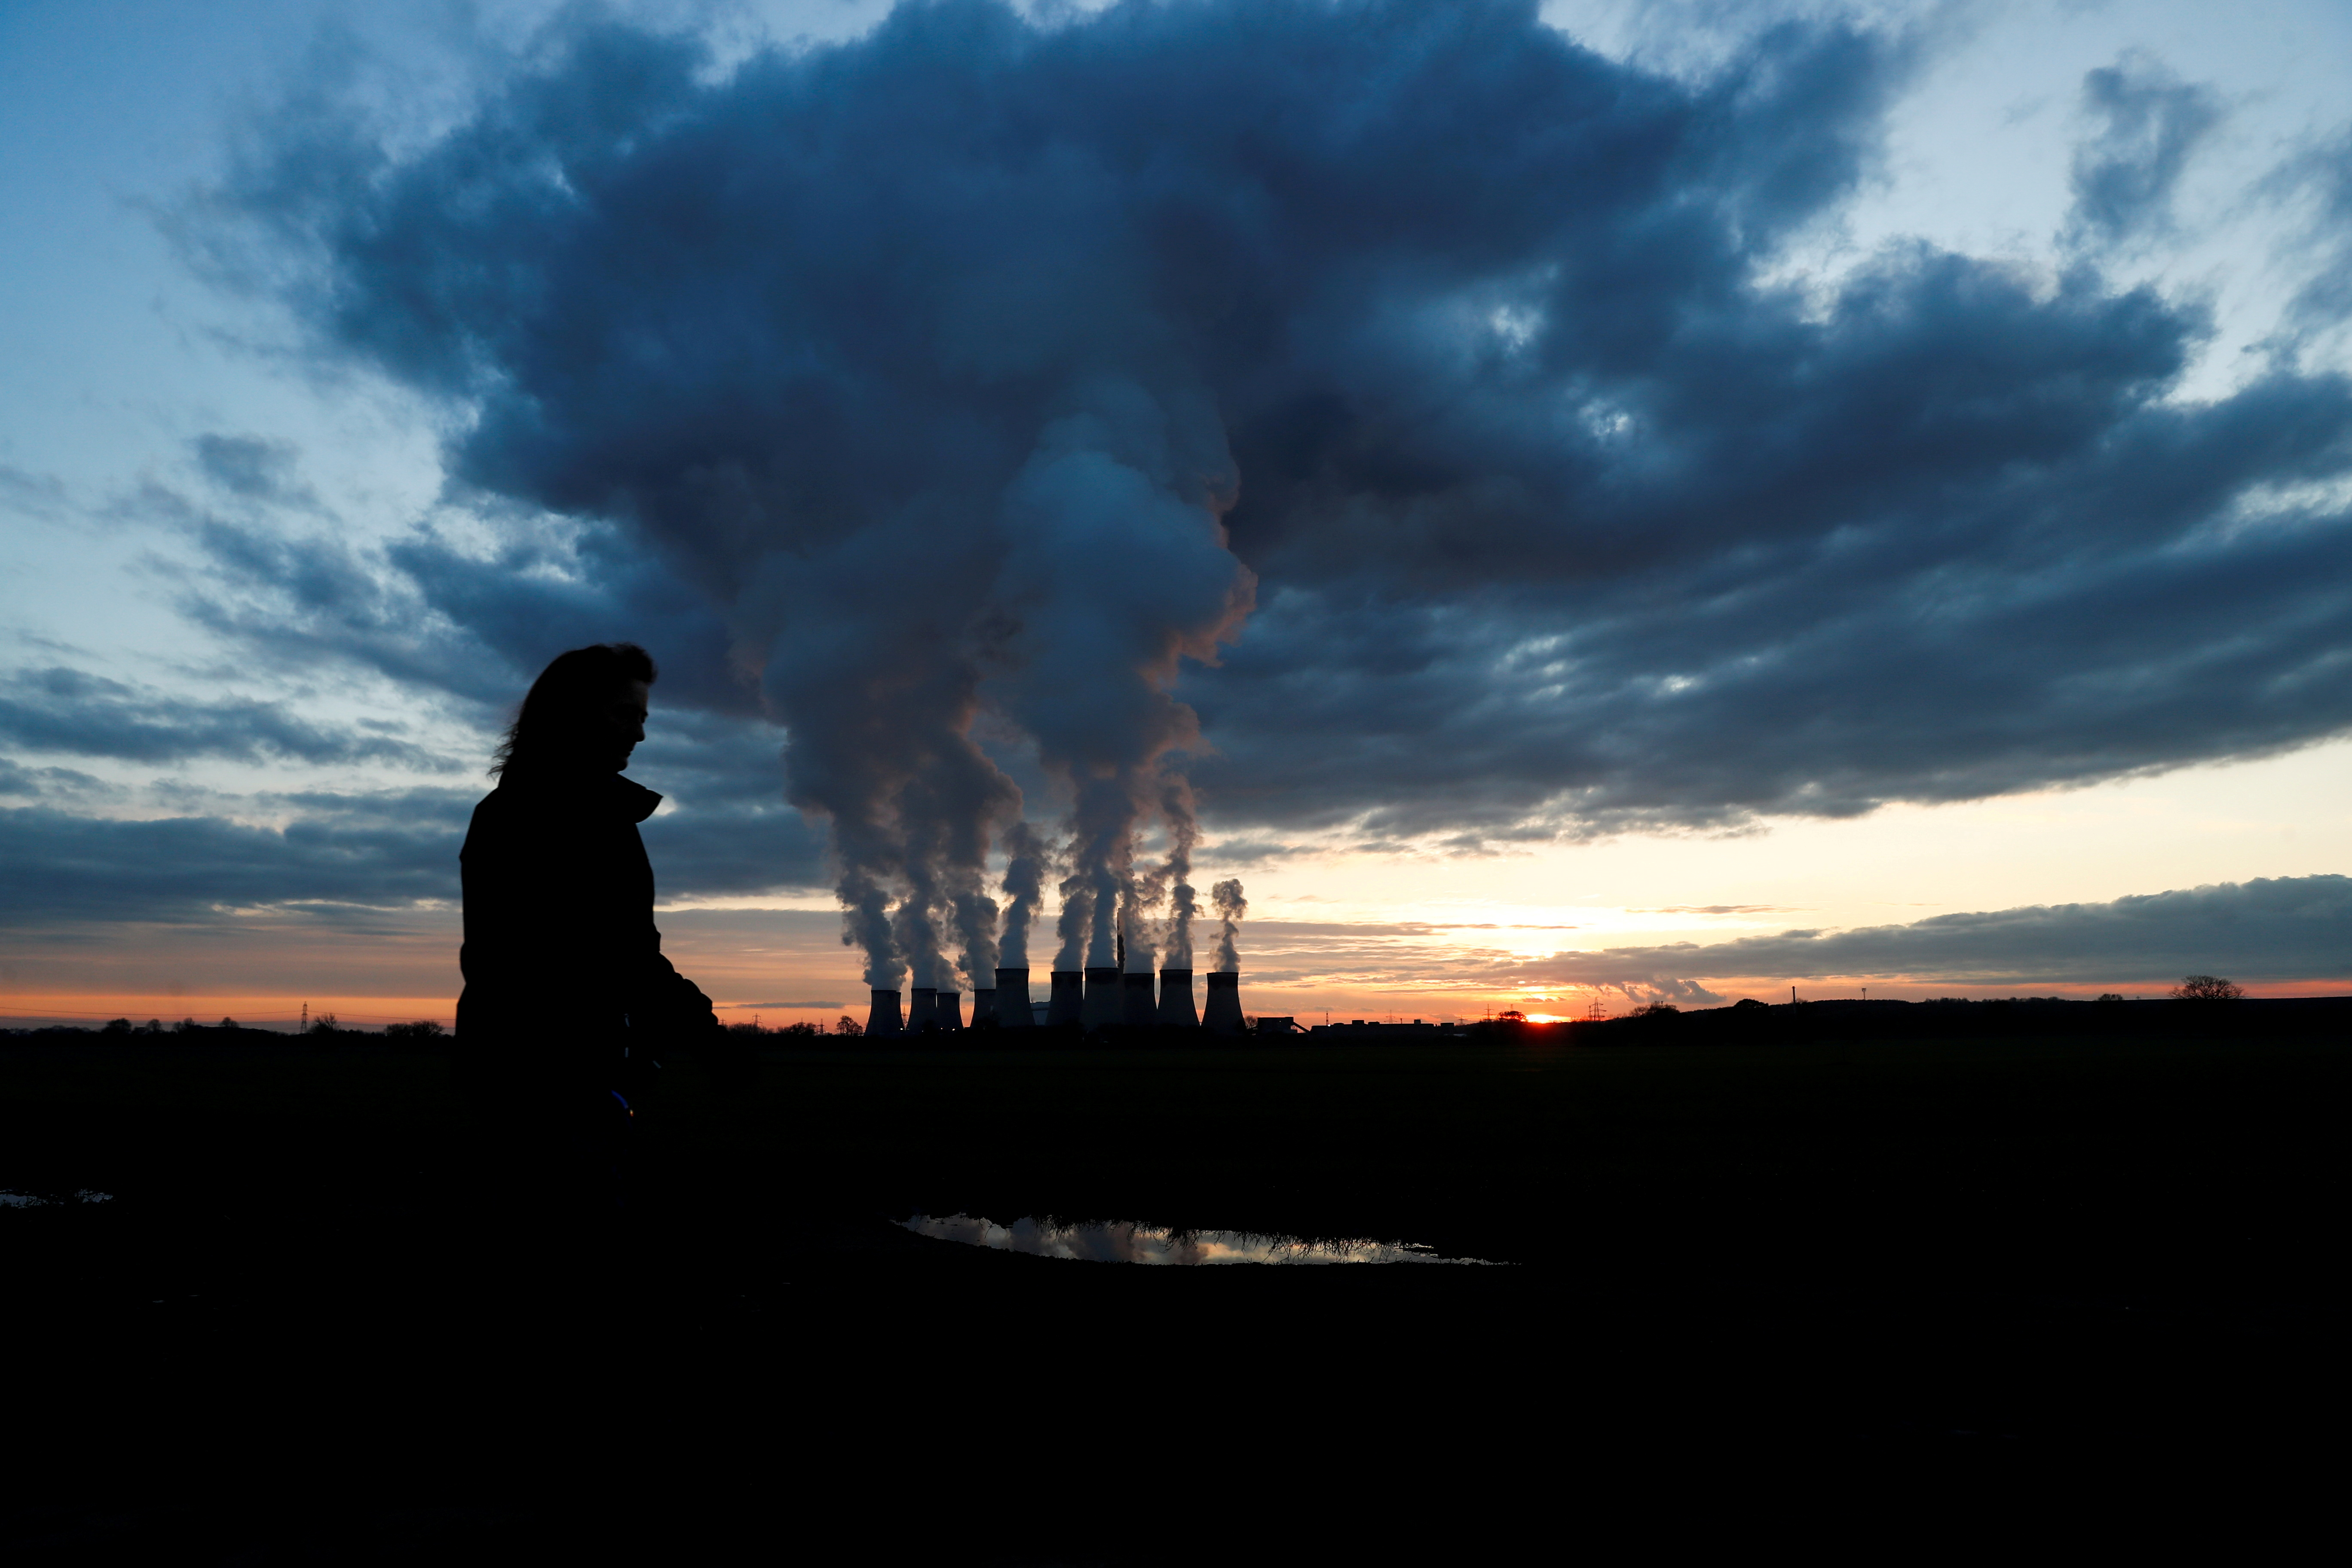 A woman walks a dog past Drax power station during the sunset in Drax, North Yorkshire, Britain, November 27, 2020. REUTERS/Lee Smith/File Photo